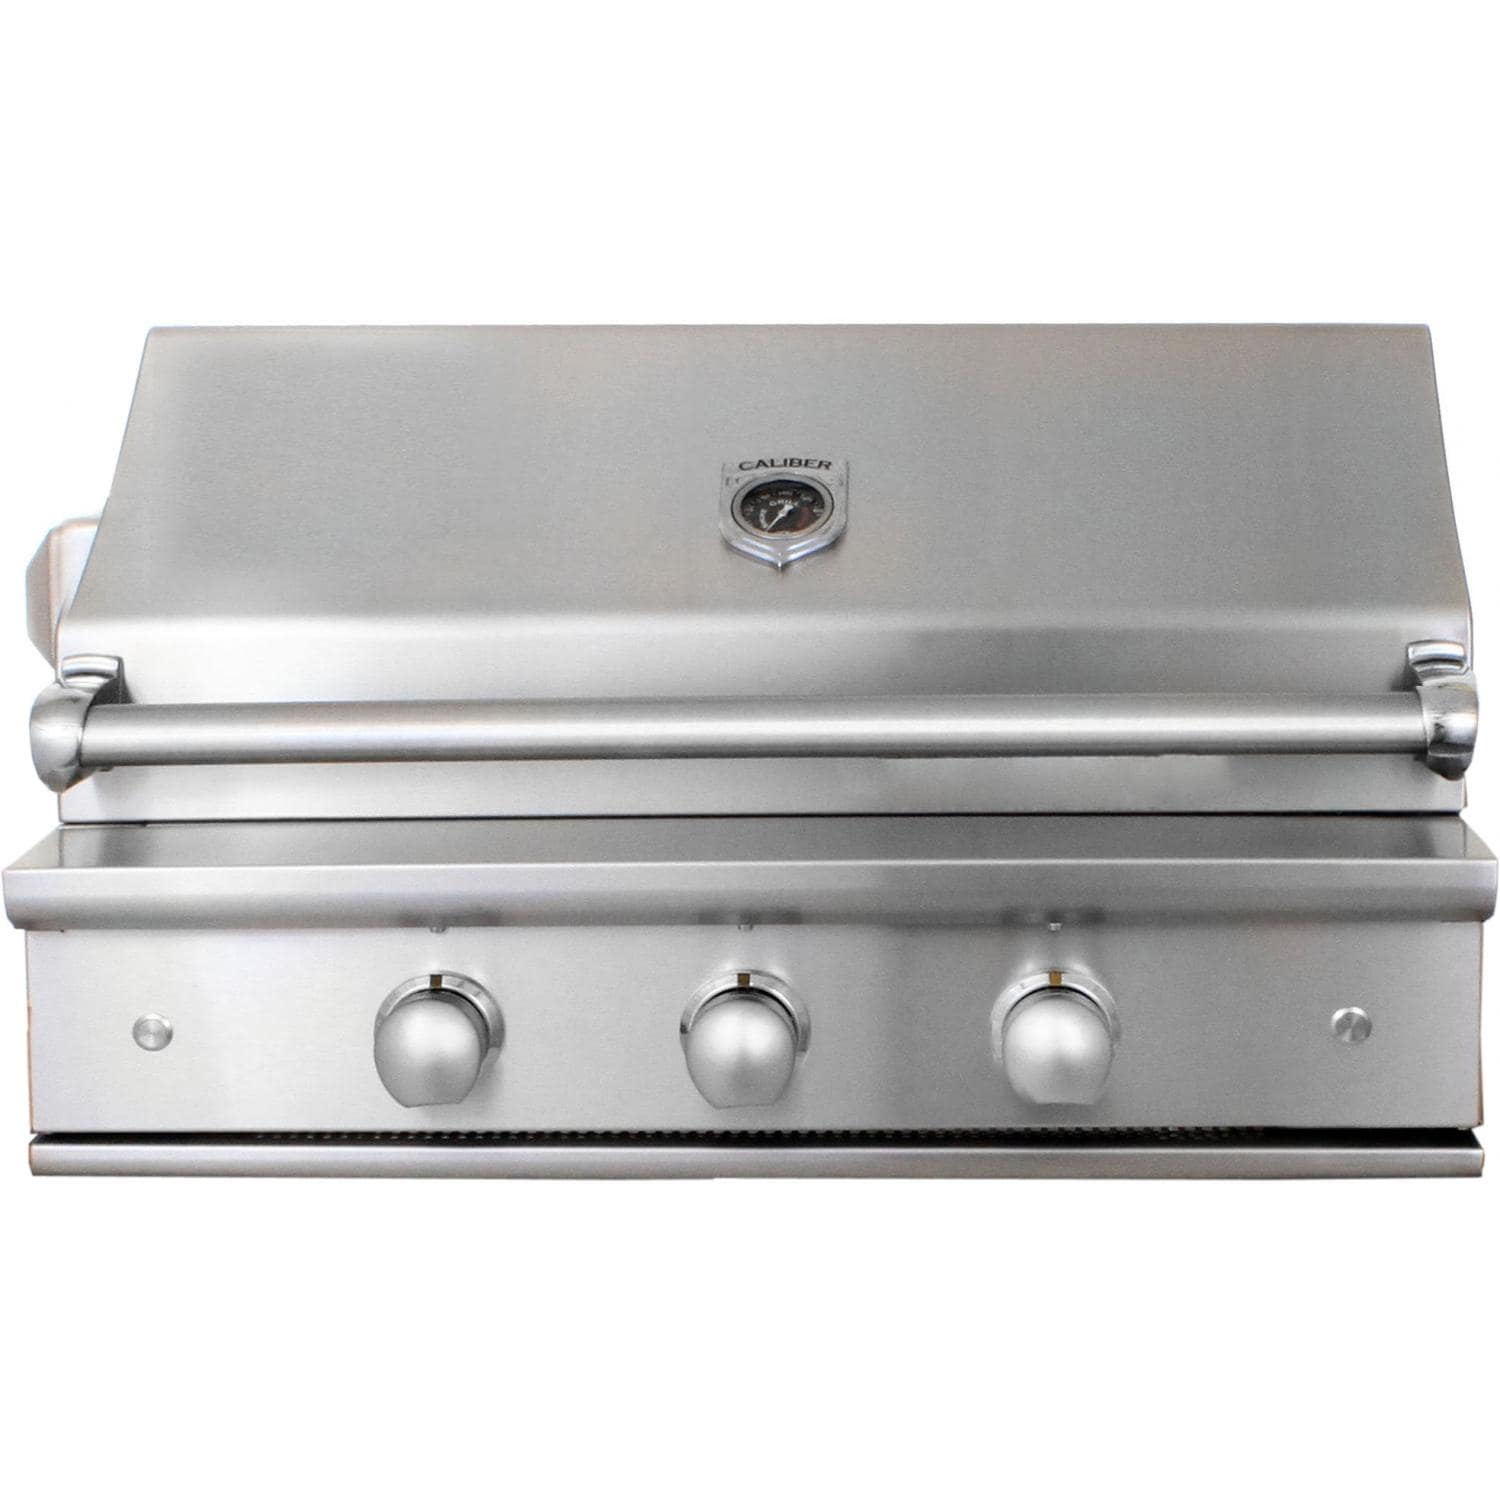 Caliber CrossFlame Silver 35-Inch Built-In Propane Gas Gr...